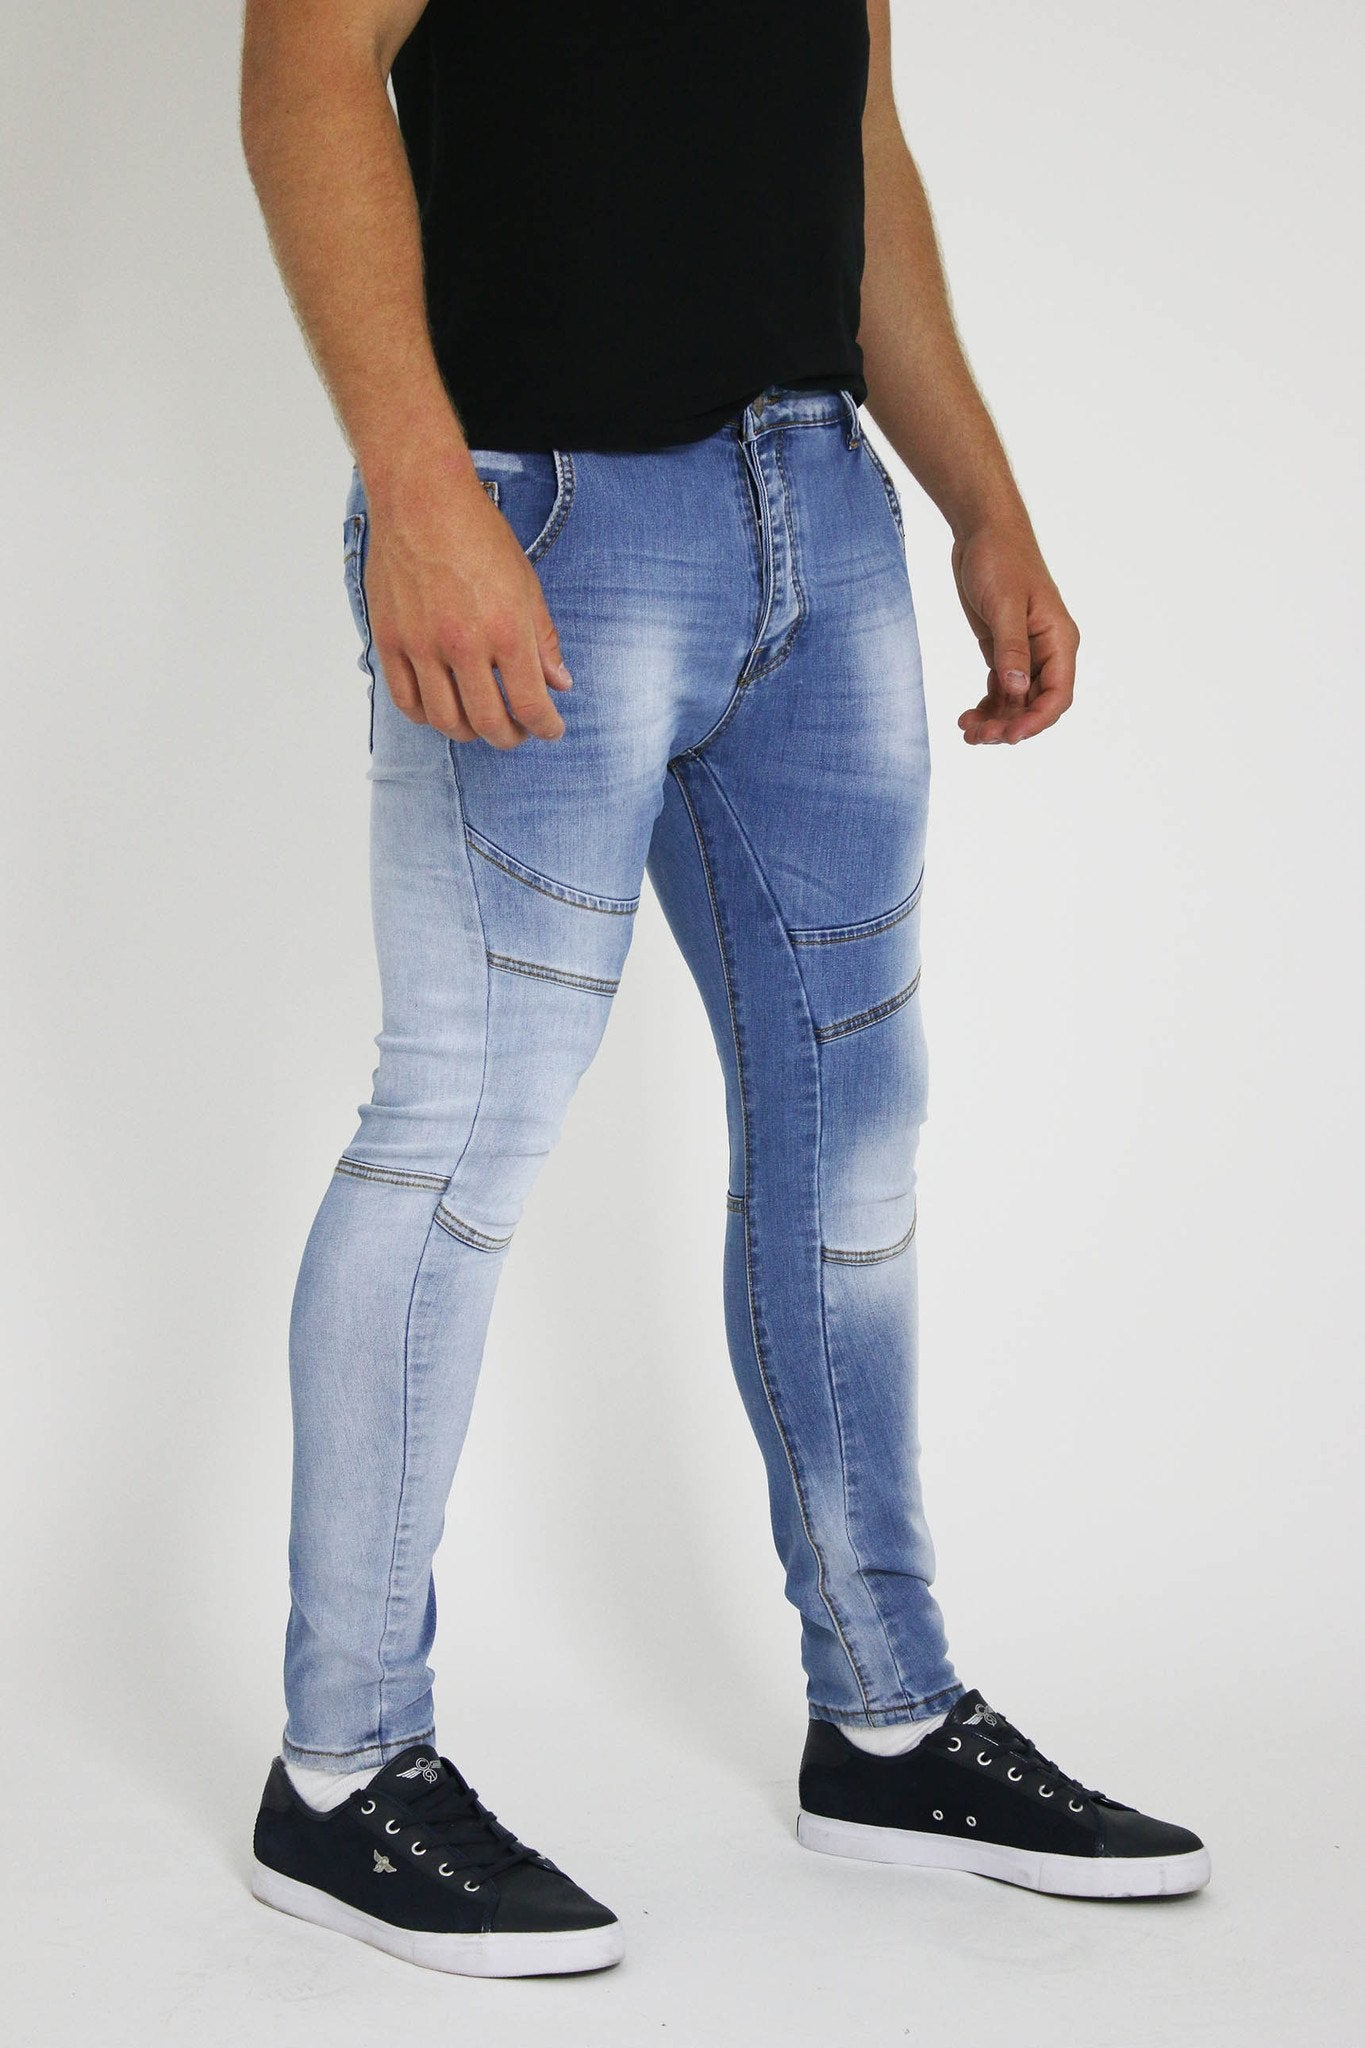 Discover men's jeans at ASOS. Shop our fashionable denim jeans for men, from skinny and slim jeans to tapered and bootcut jeans. Order today at ASOS. your browser is not supported. COLLUSION straight leg jean in washed black. £ COLLUSION Plus skater black jeans with contrast stitch.